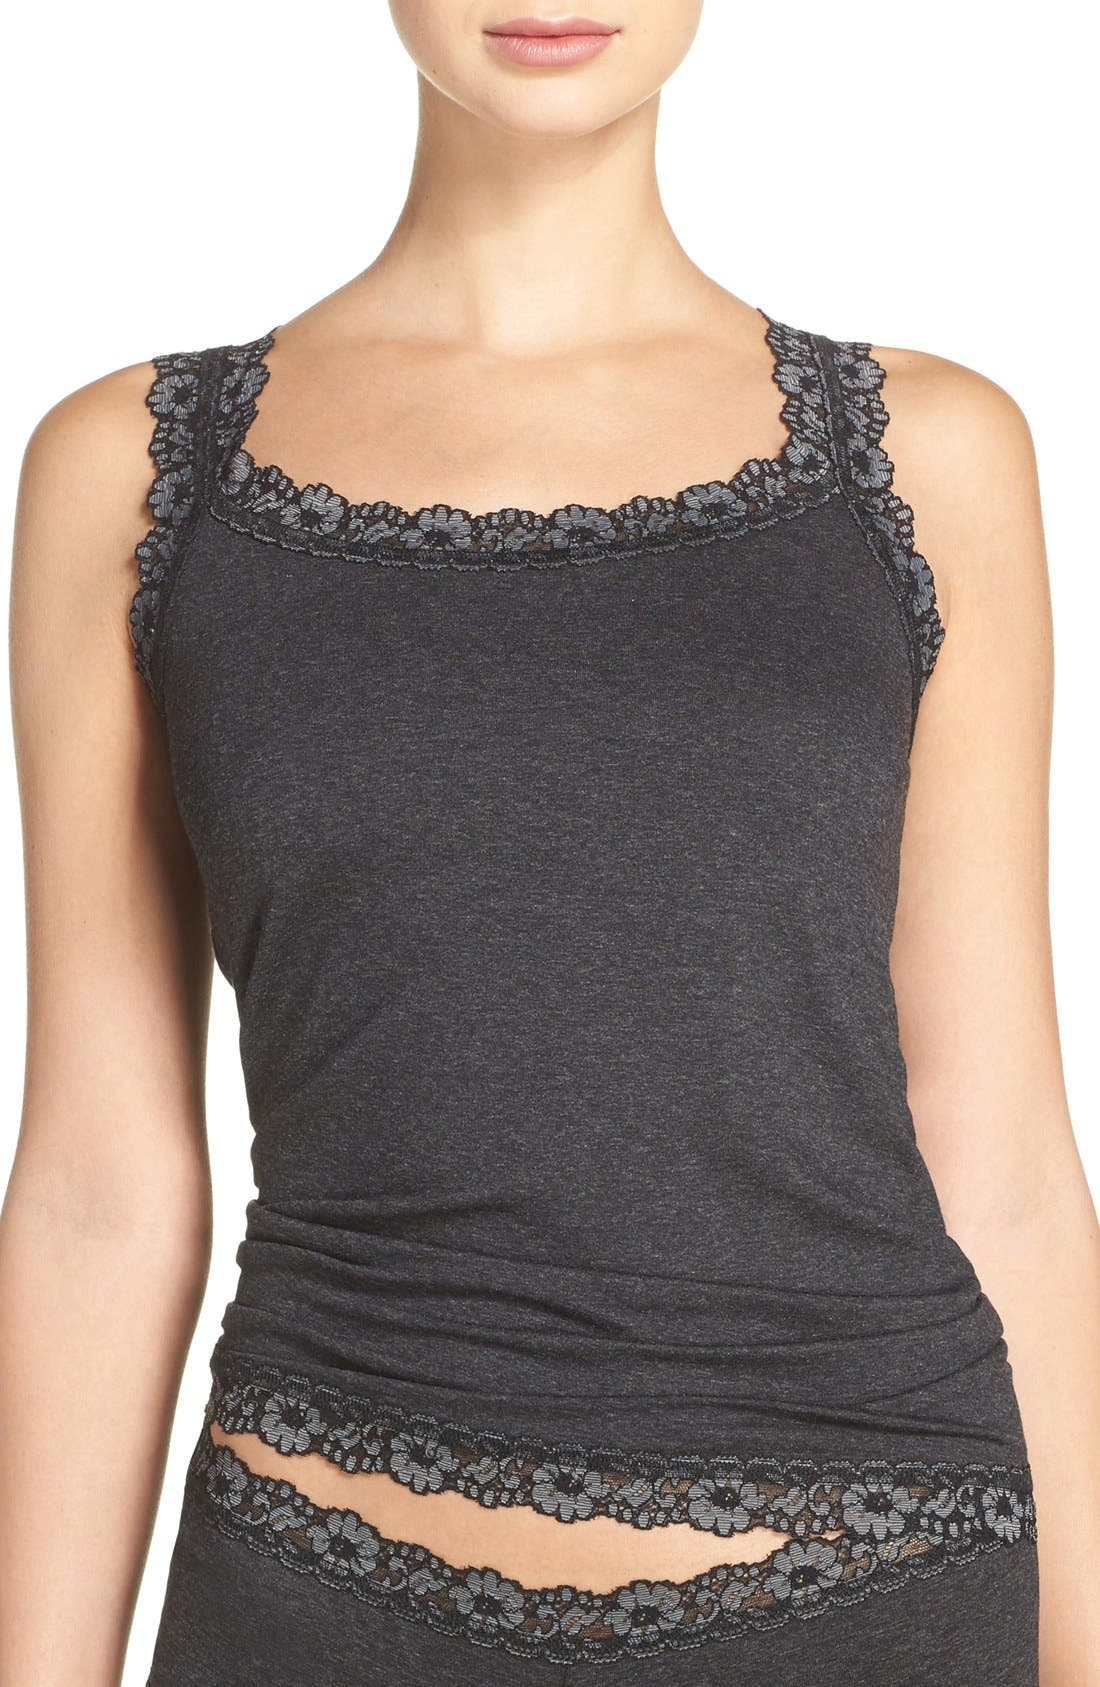 HANKY PANKY Classic Heather Jersey Camisole